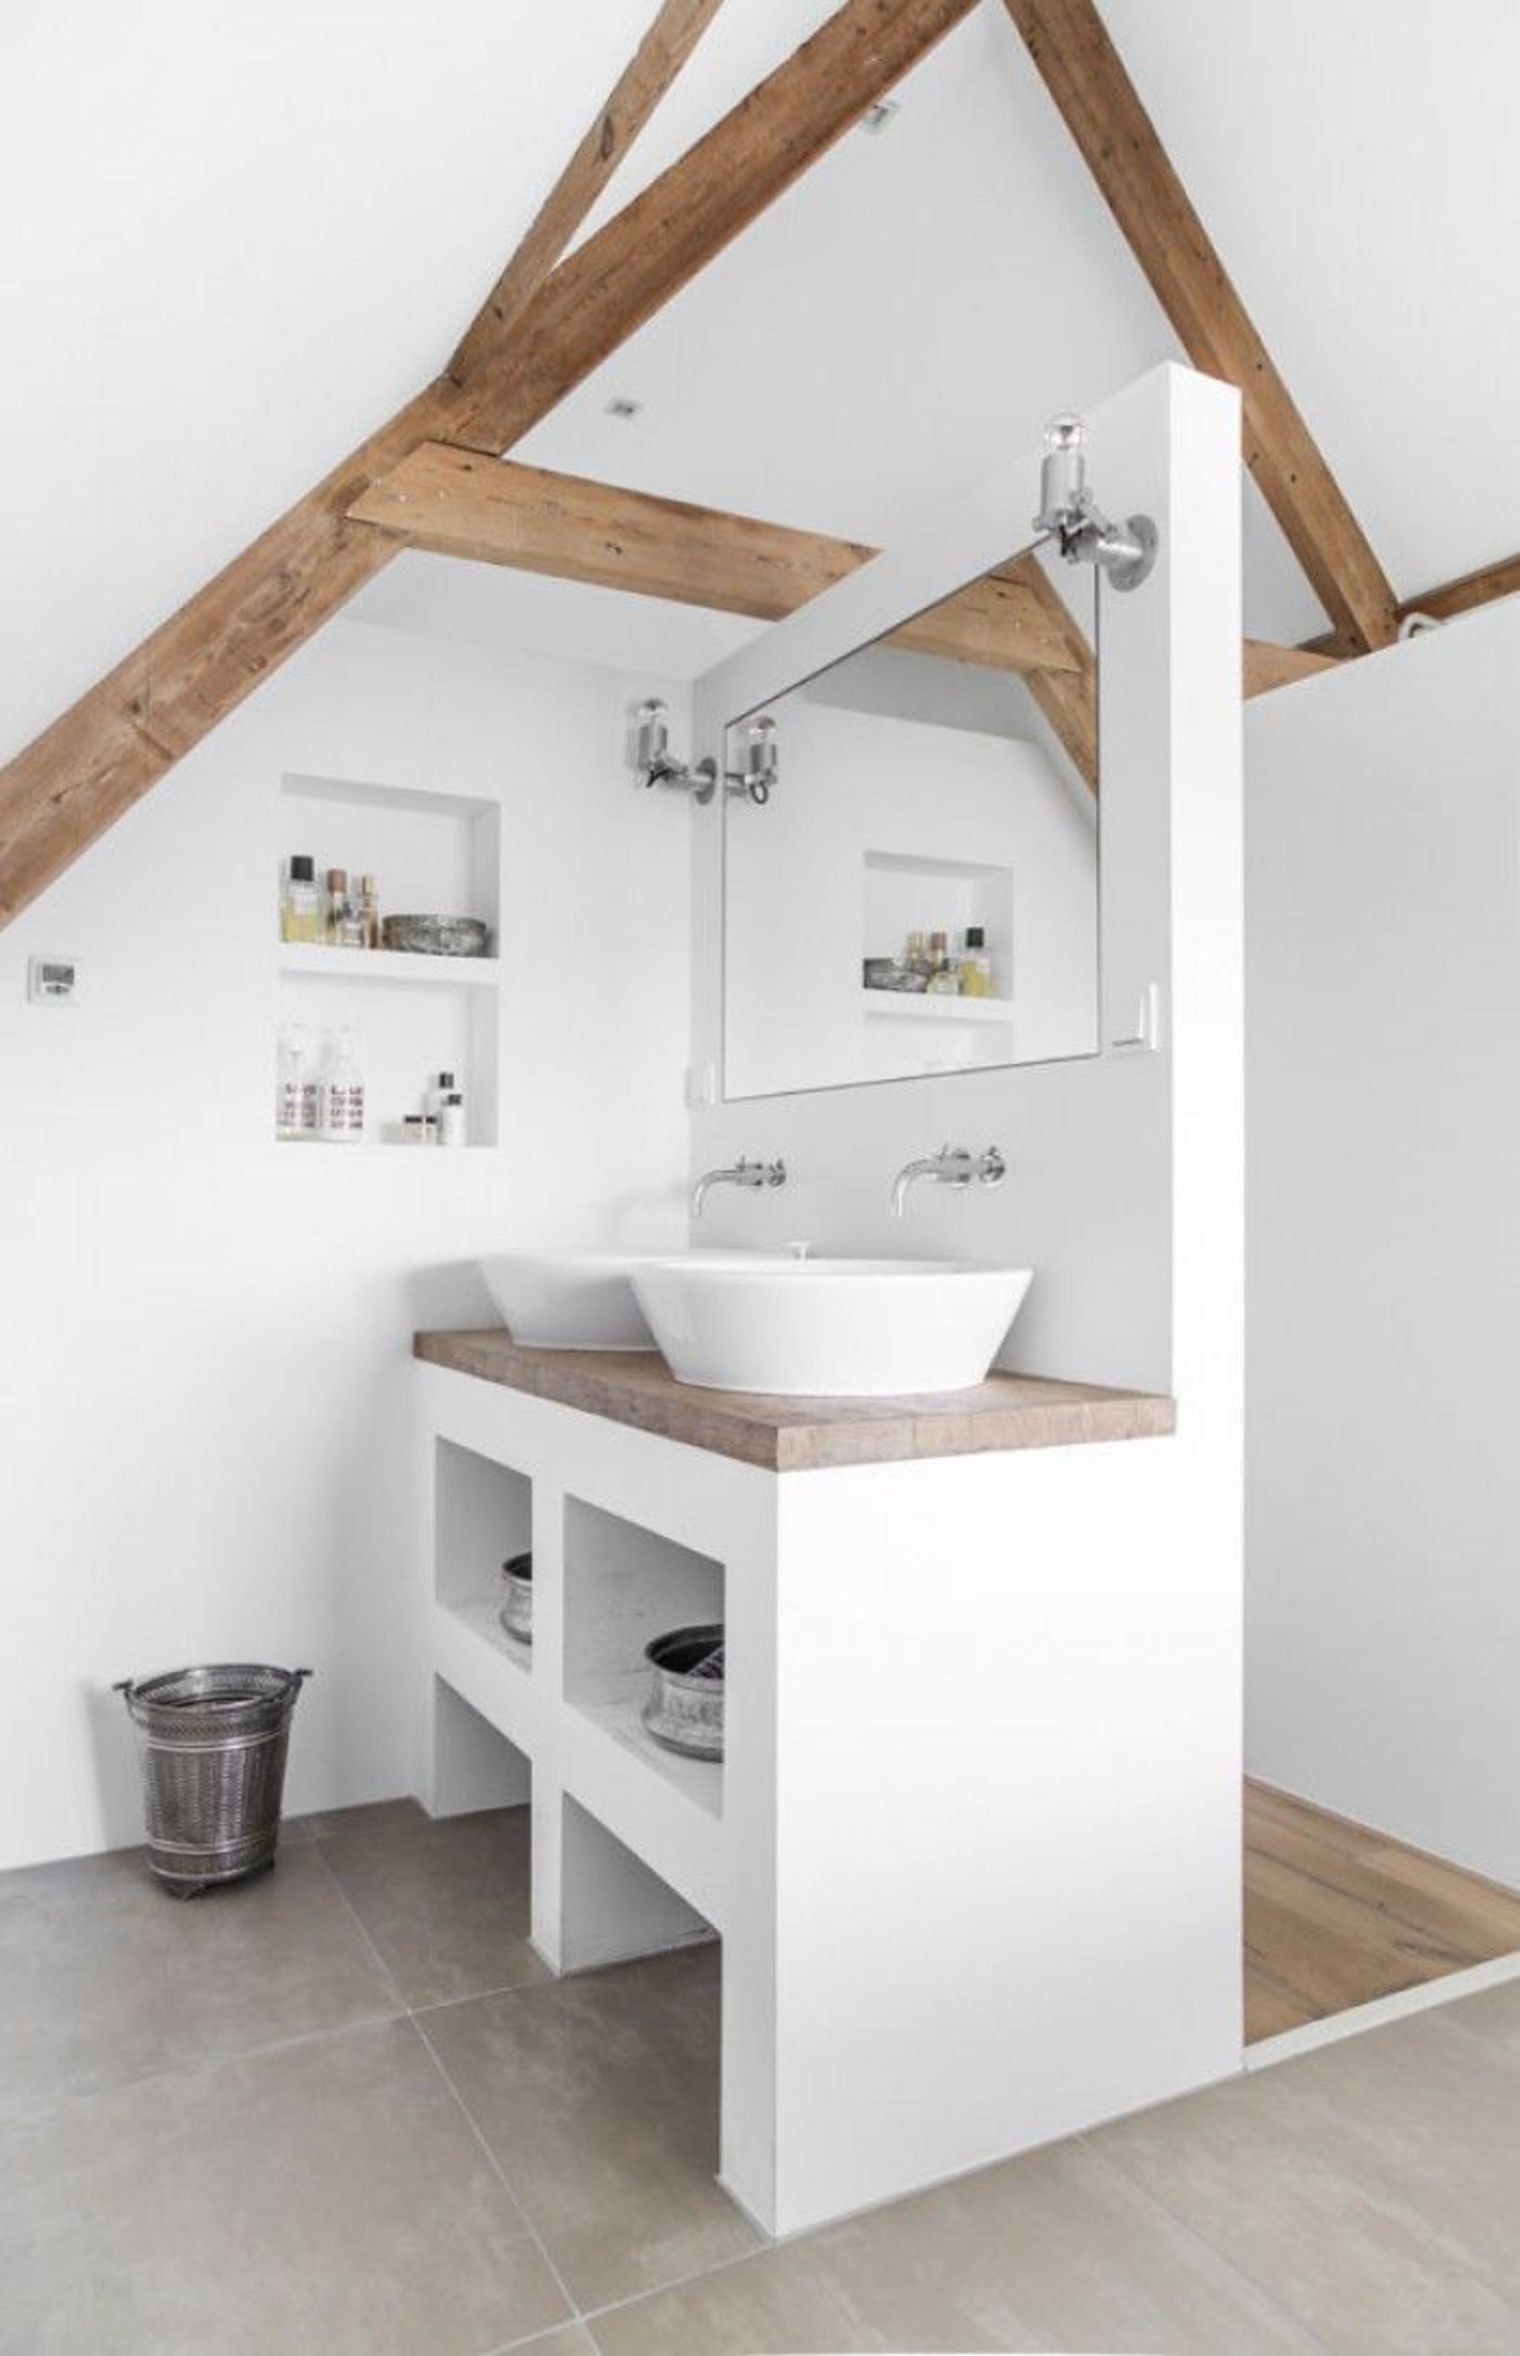 SuiteOfTheWeek | Mansard #bathrooms Rustic essence in spaces for ...